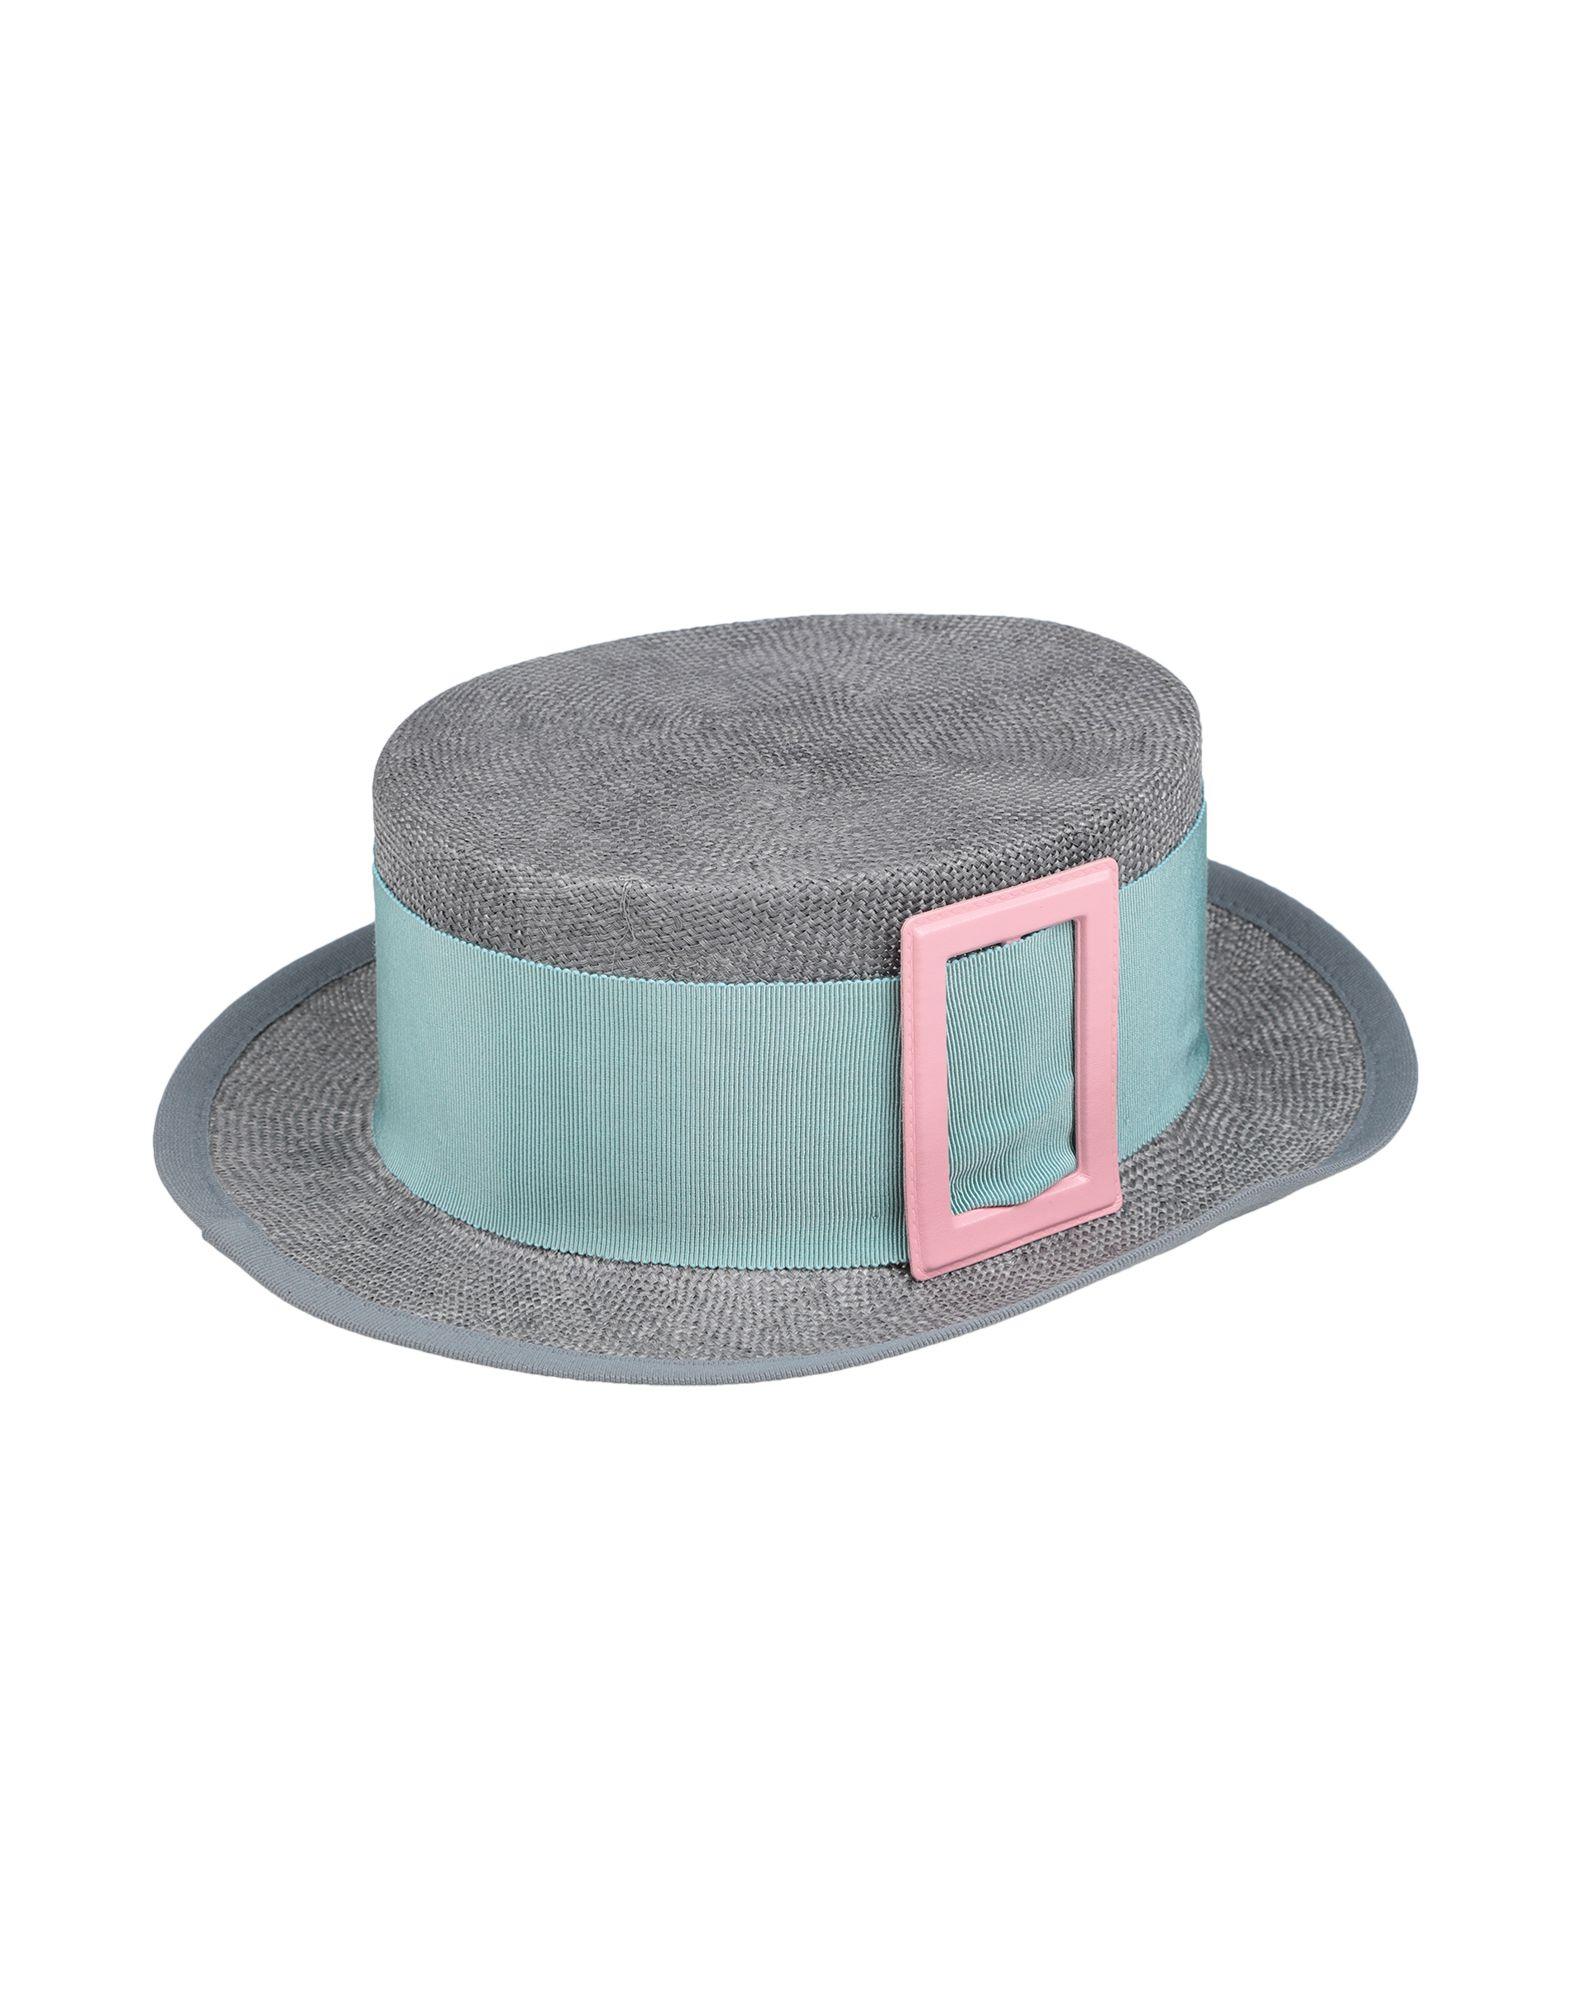 ec4cd0a7b44 Emporio Armani Women s Hats - Spring-Summer and Fall-Winter Collections